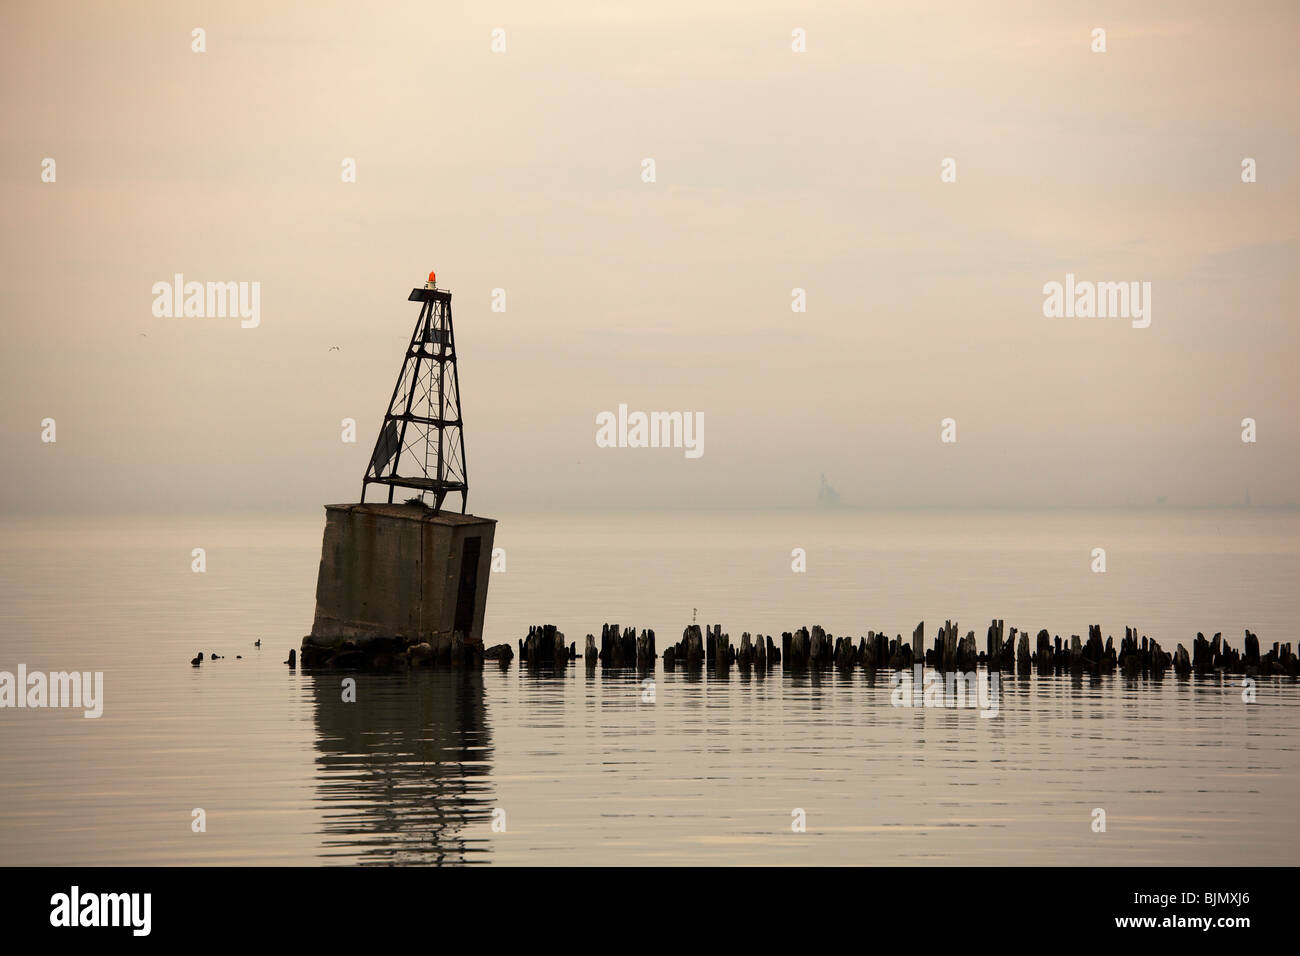 Dime Pier and navigation beacon. Chicago Illinois. - Stock Image